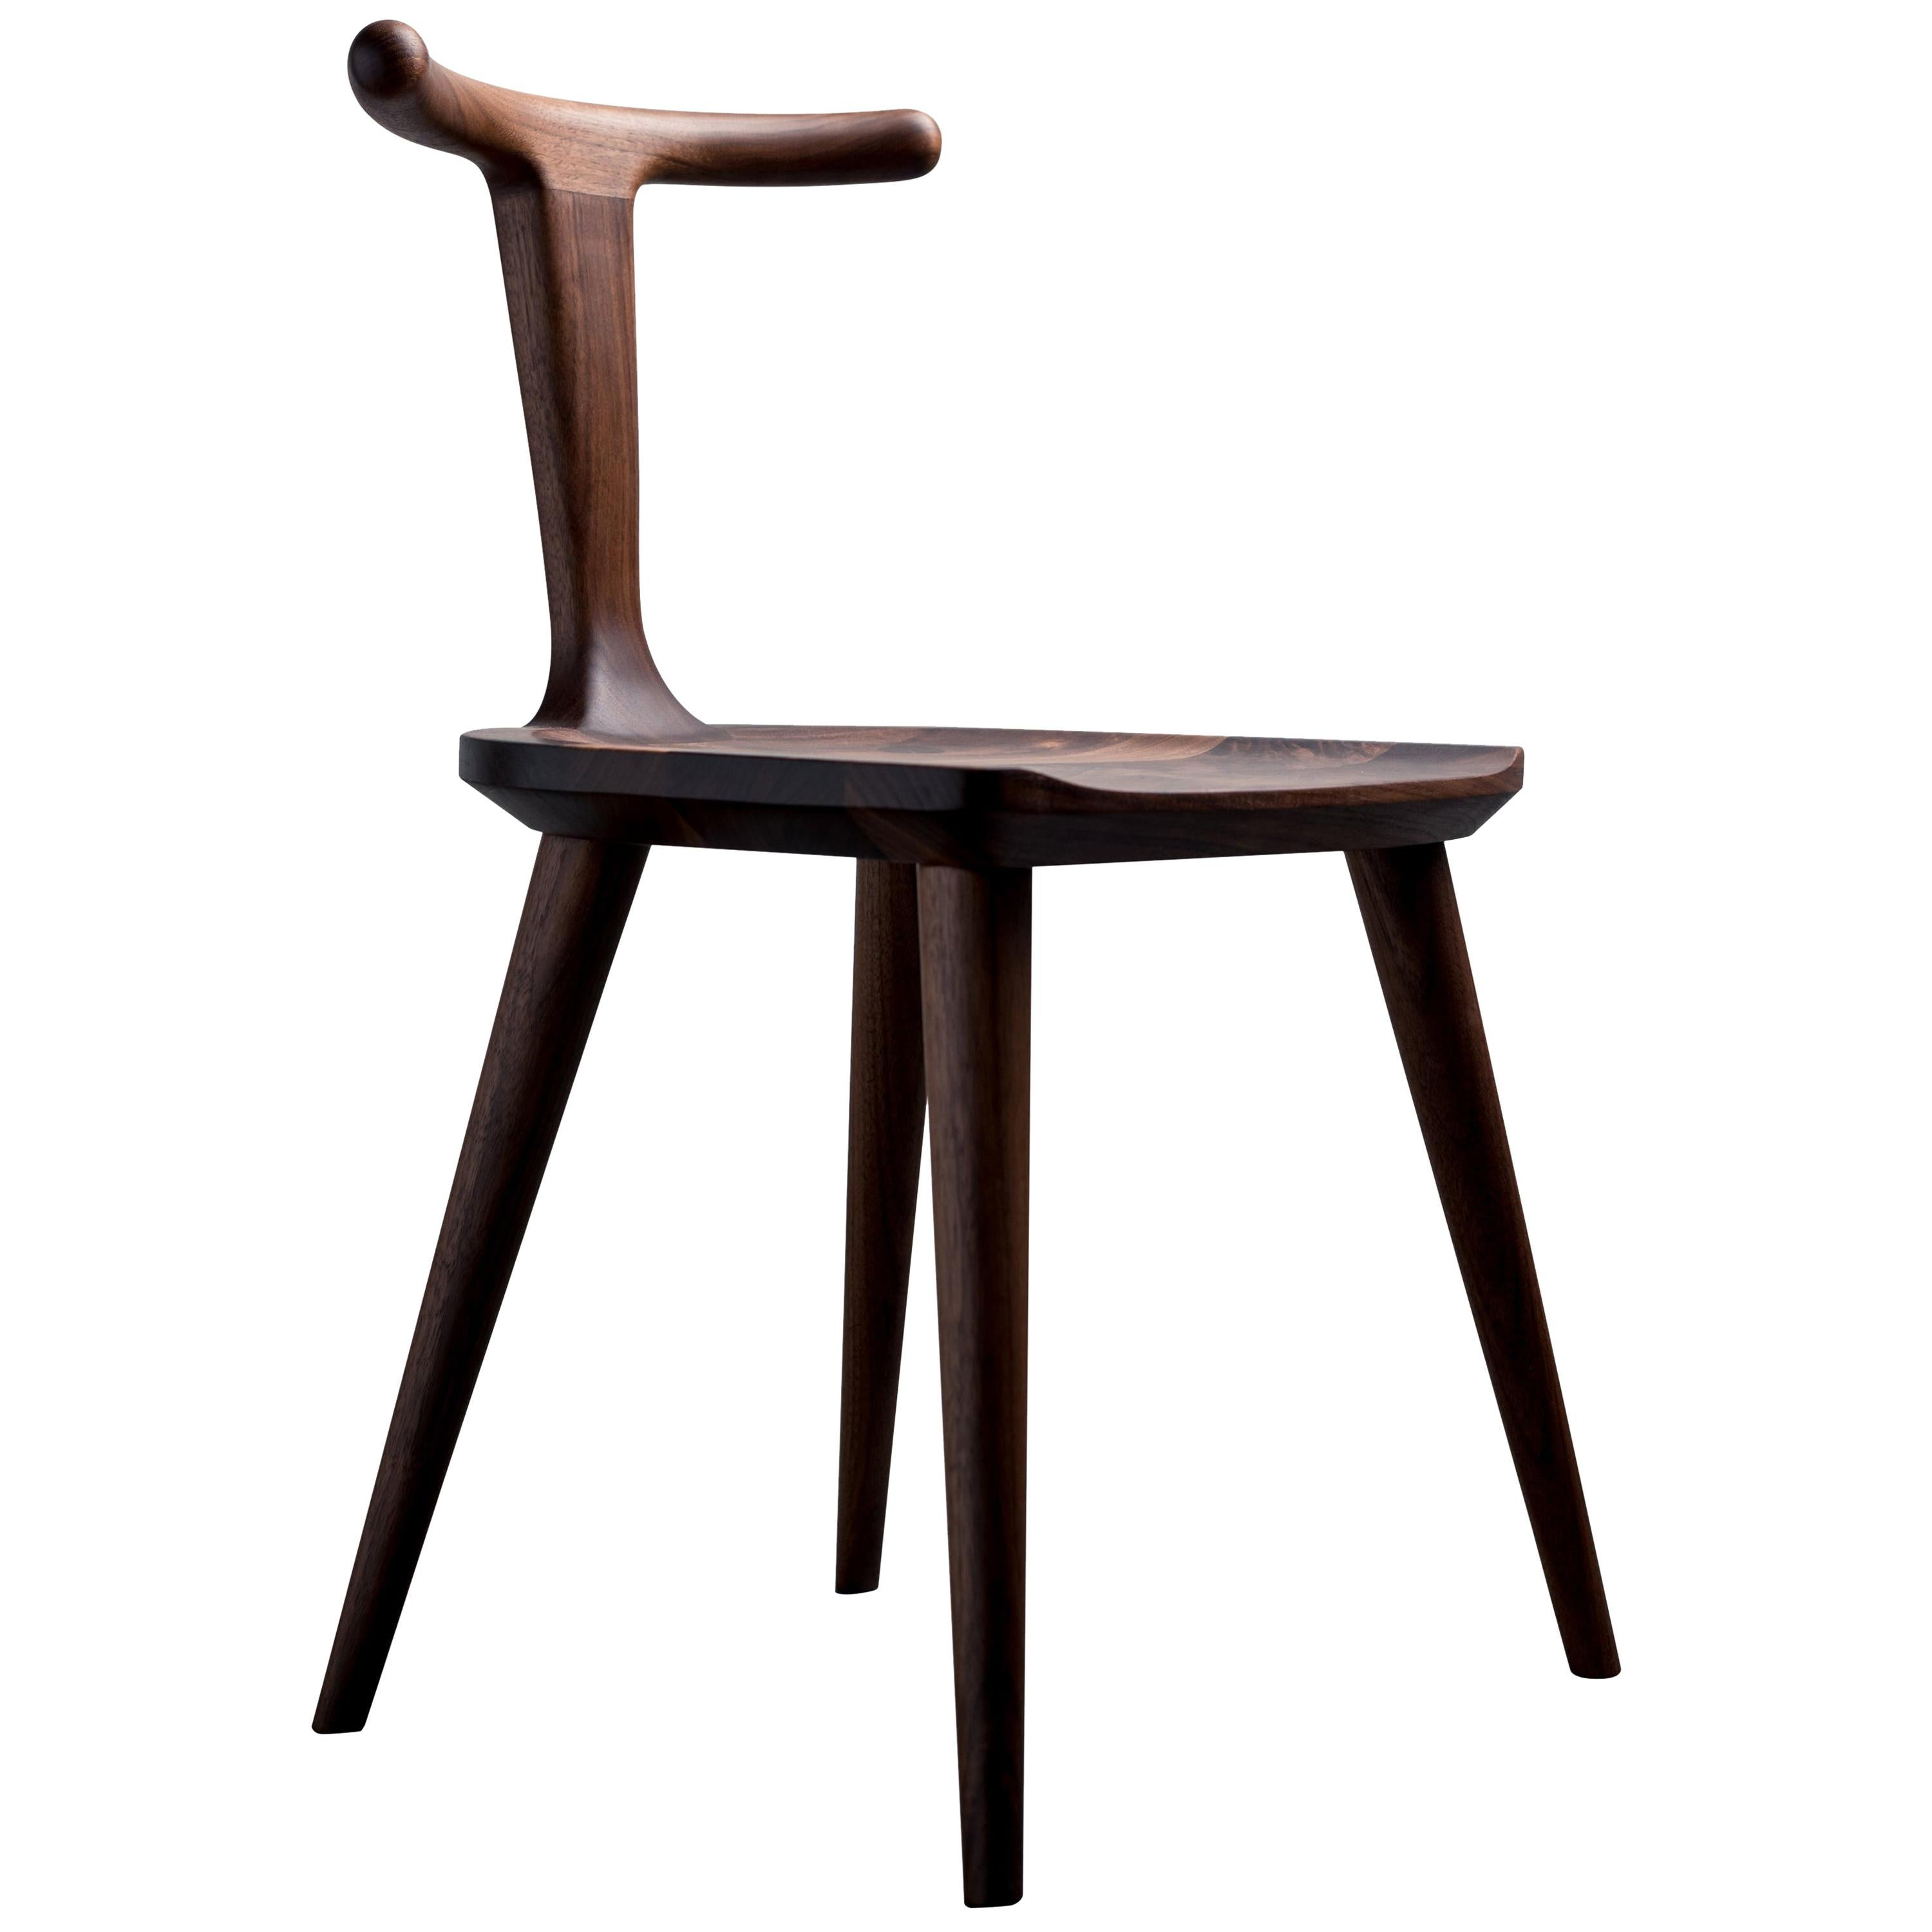 Oxbend Chair, Dining Seat in Walnut Wood by Fernweh Woodworking